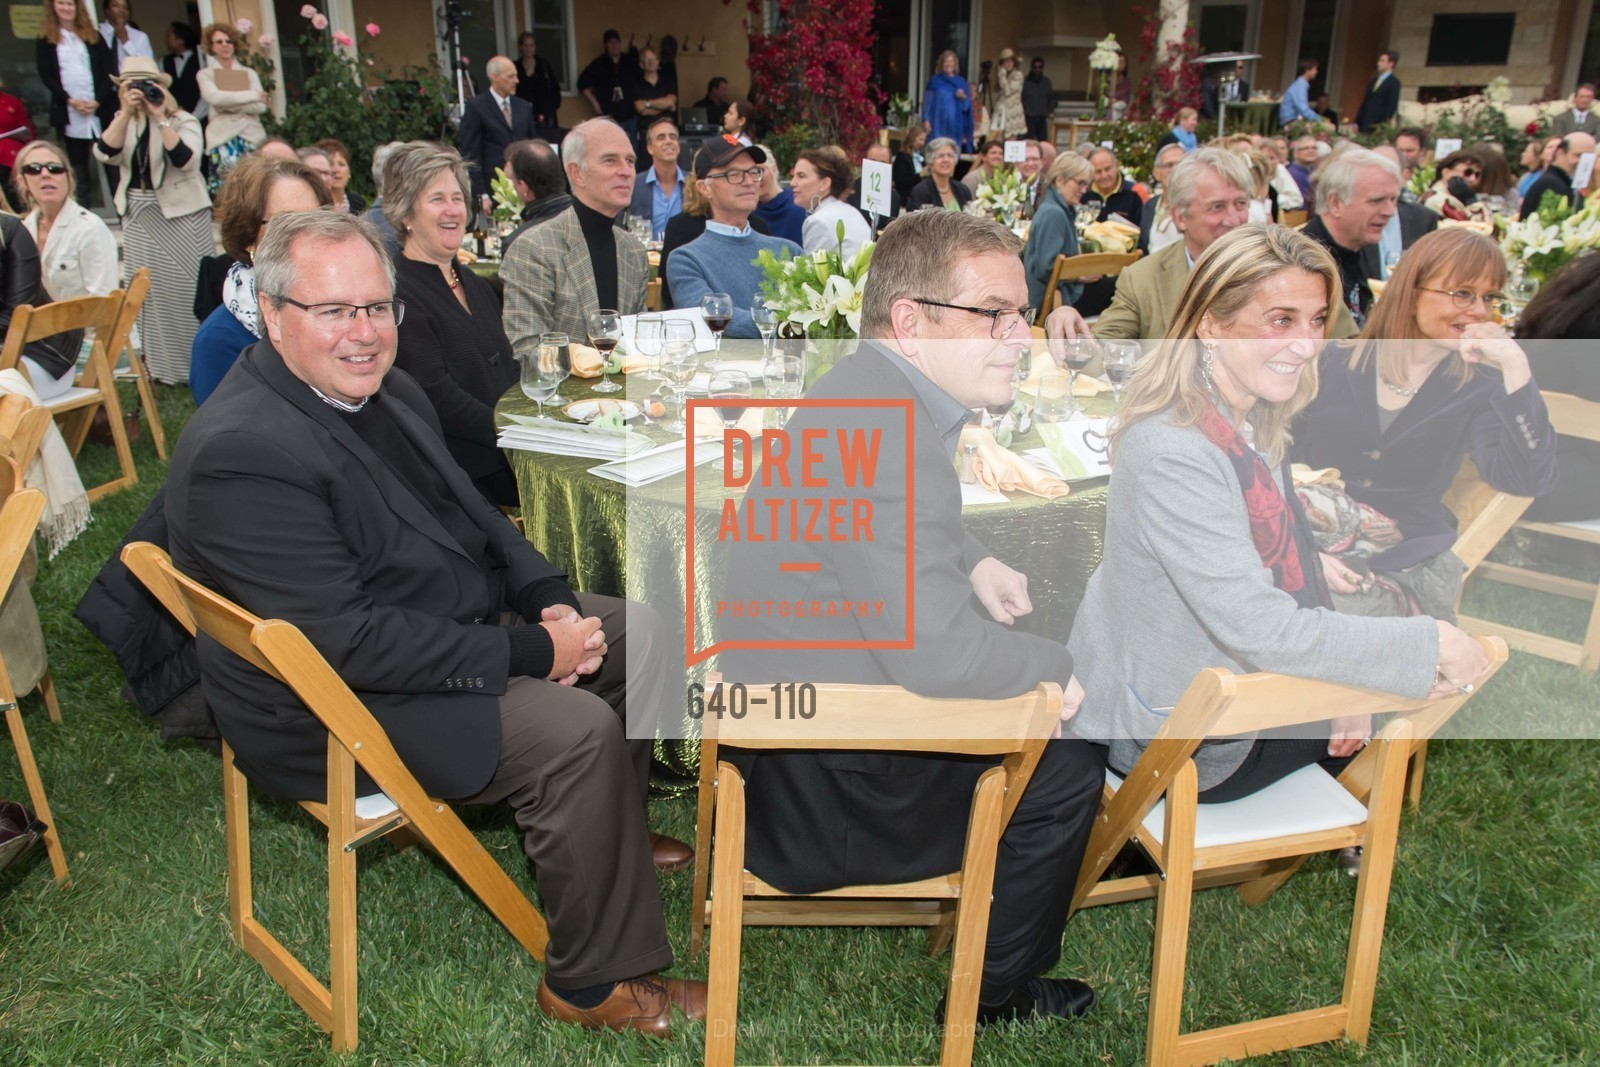 Stu Phillips, Barbara Phillips, LYME AID 2015 Benefiting the Bay Area Lyme Foundation, Private Residence, May 16th, 2015,Drew Altizer, Drew Altizer Photography, full-service agency, private events, San Francisco photographer, photographer california